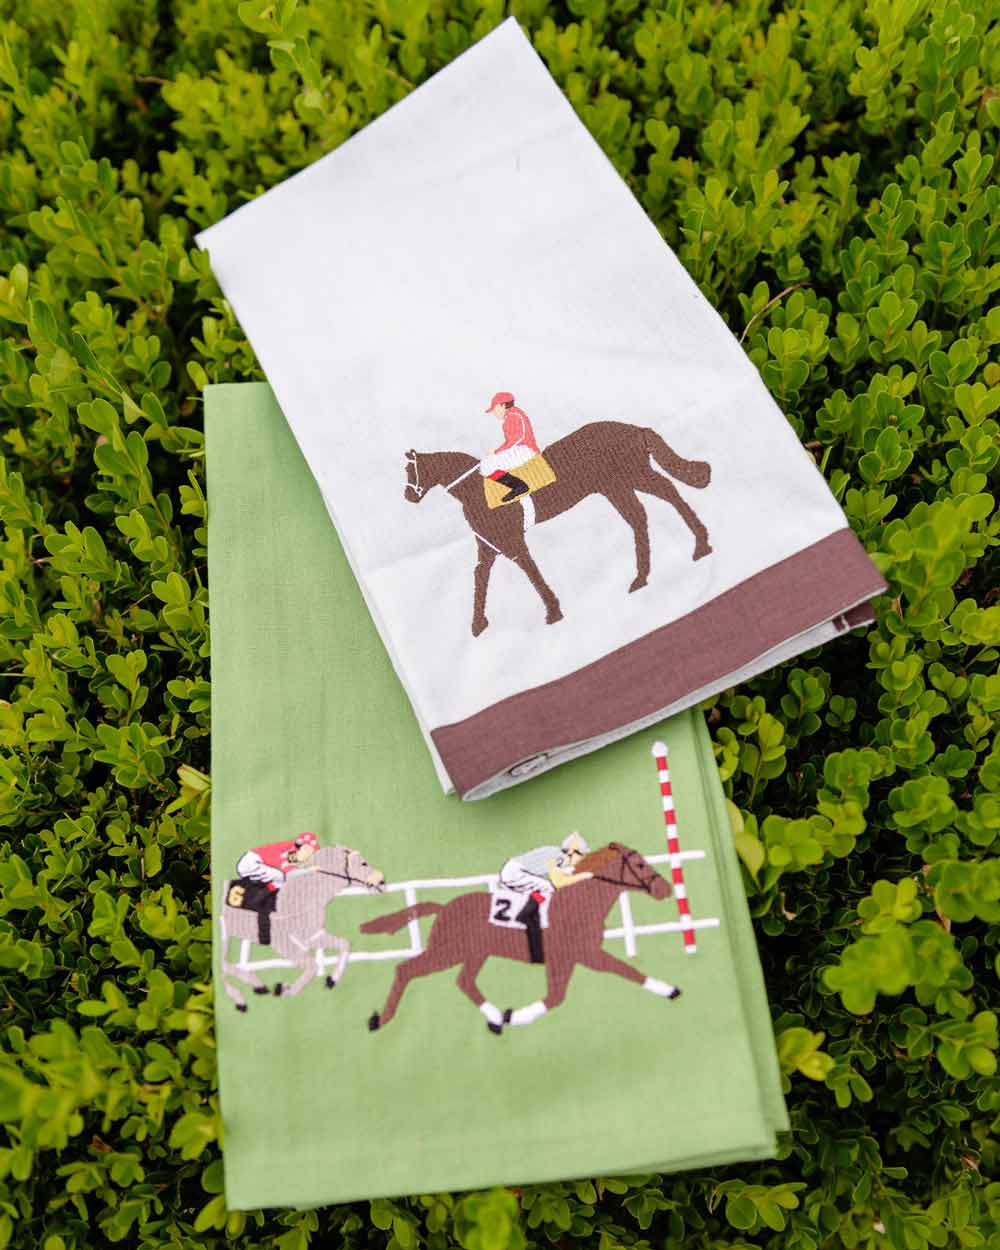 embroidered equestrian towels laying on bush